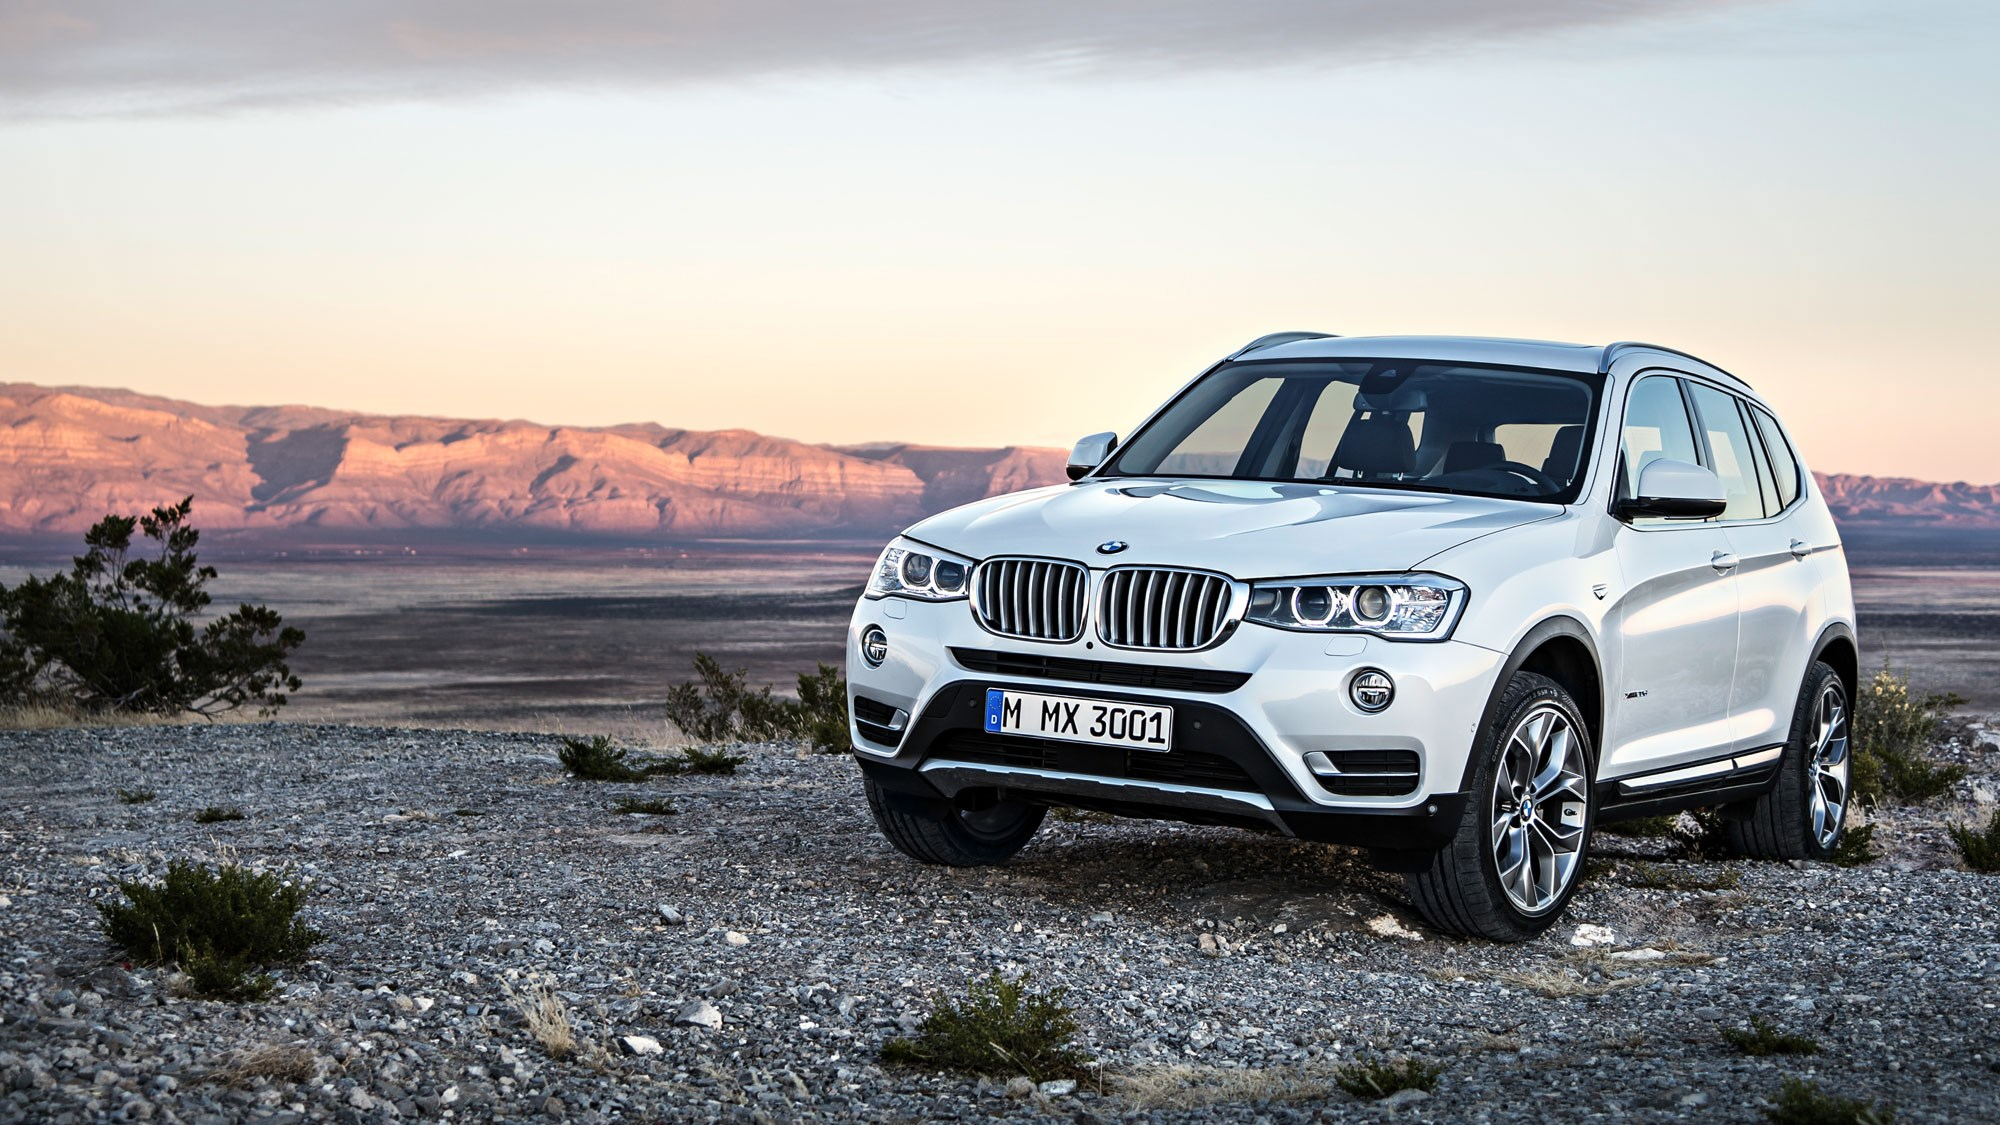 bmw x3 xdrive 20d m sport 2015 review car magazine. Black Bedroom Furniture Sets. Home Design Ideas